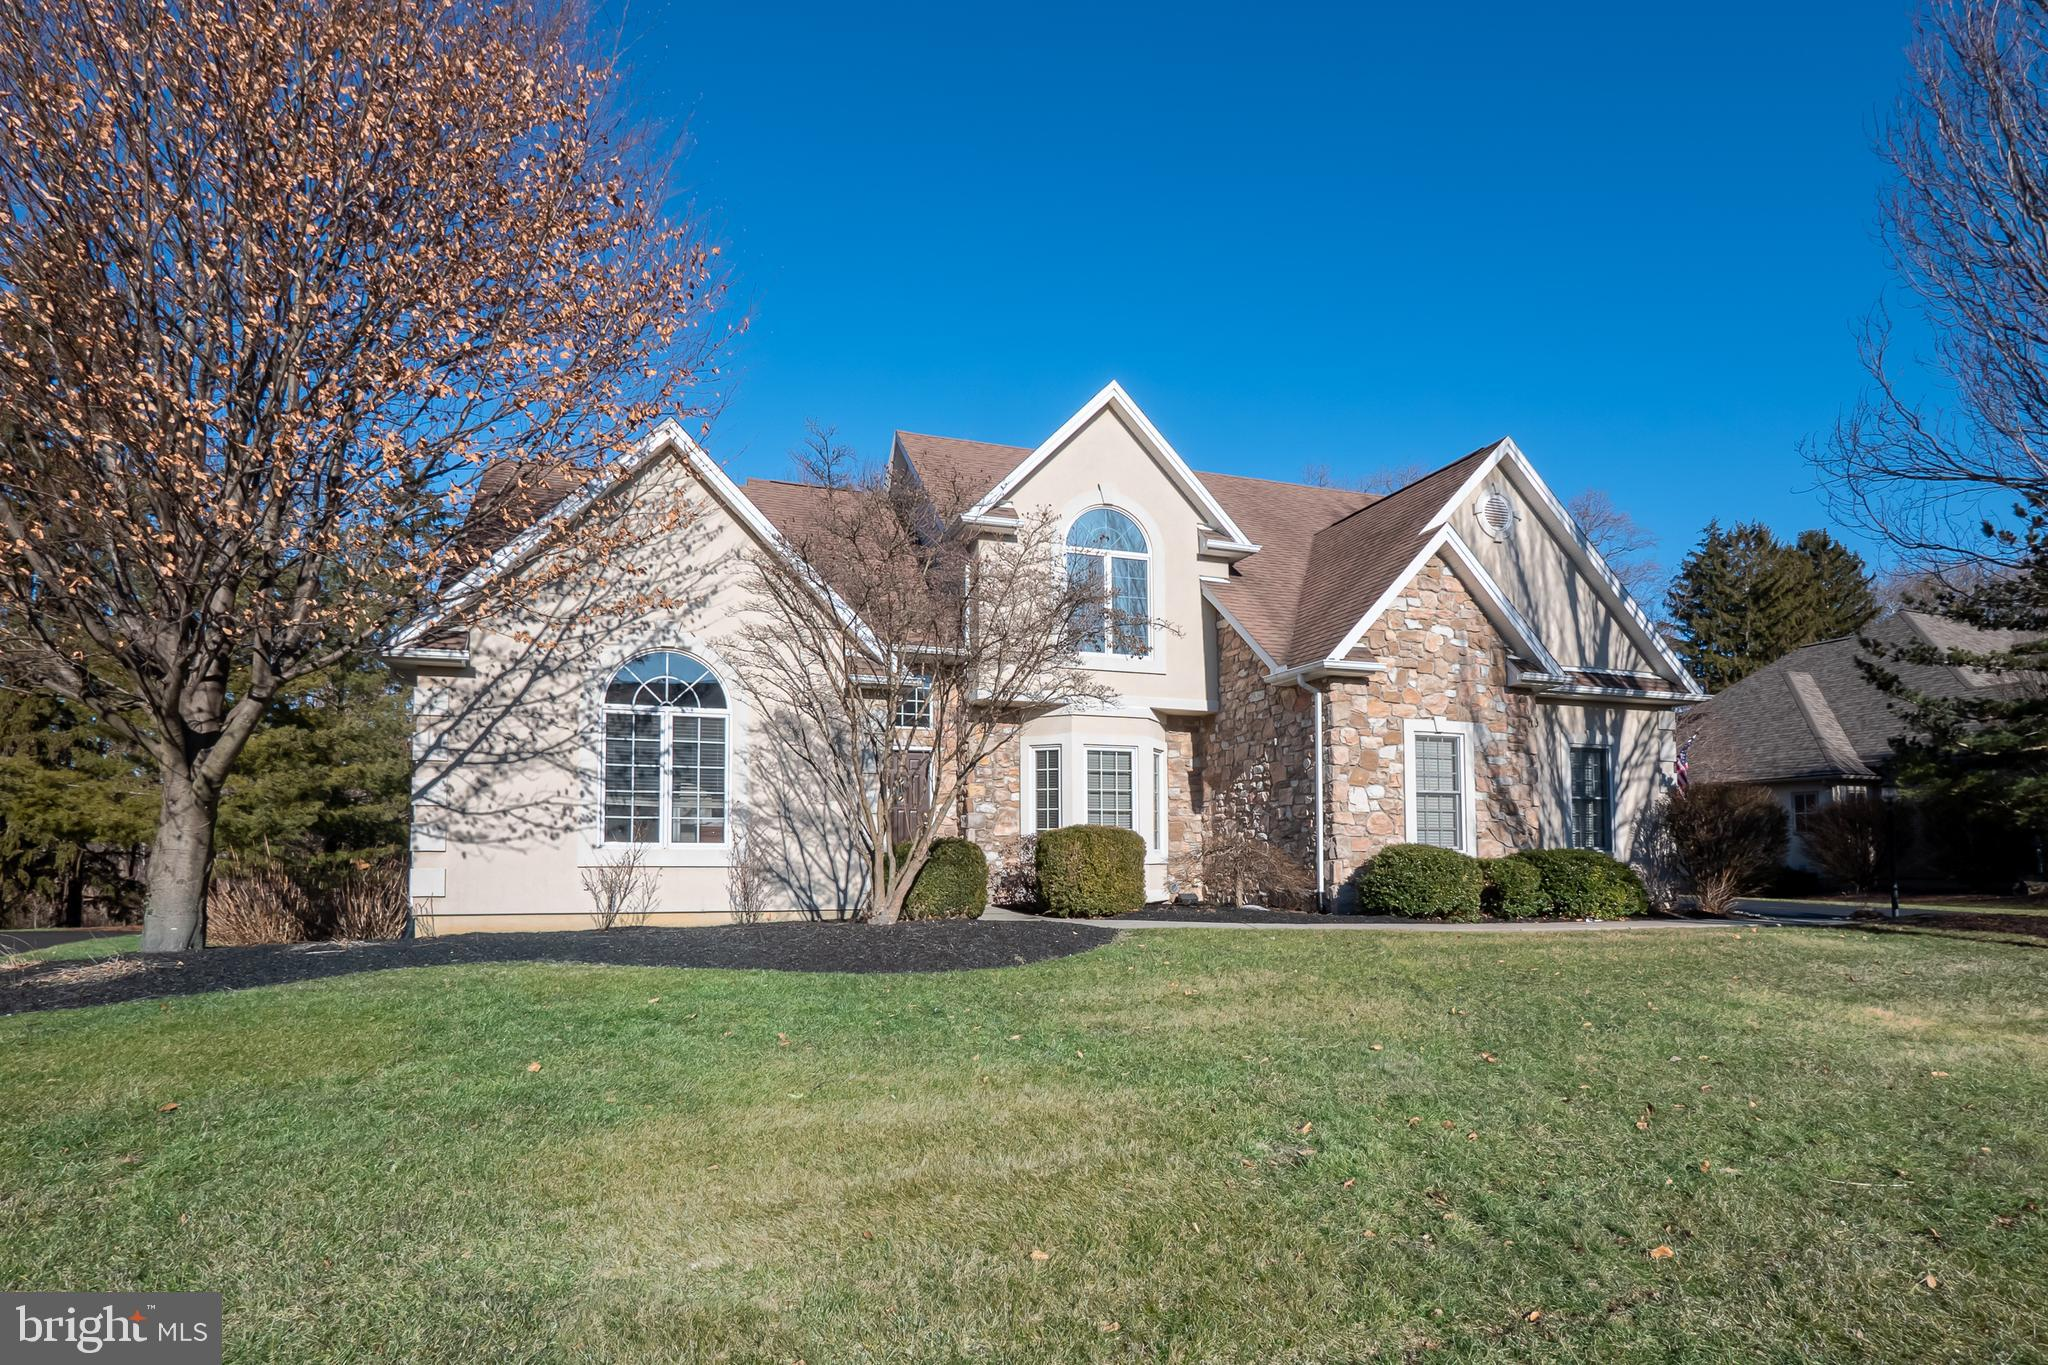 3101 MUIRFIELD ROAD, CENTER VALLEY, PA 18034